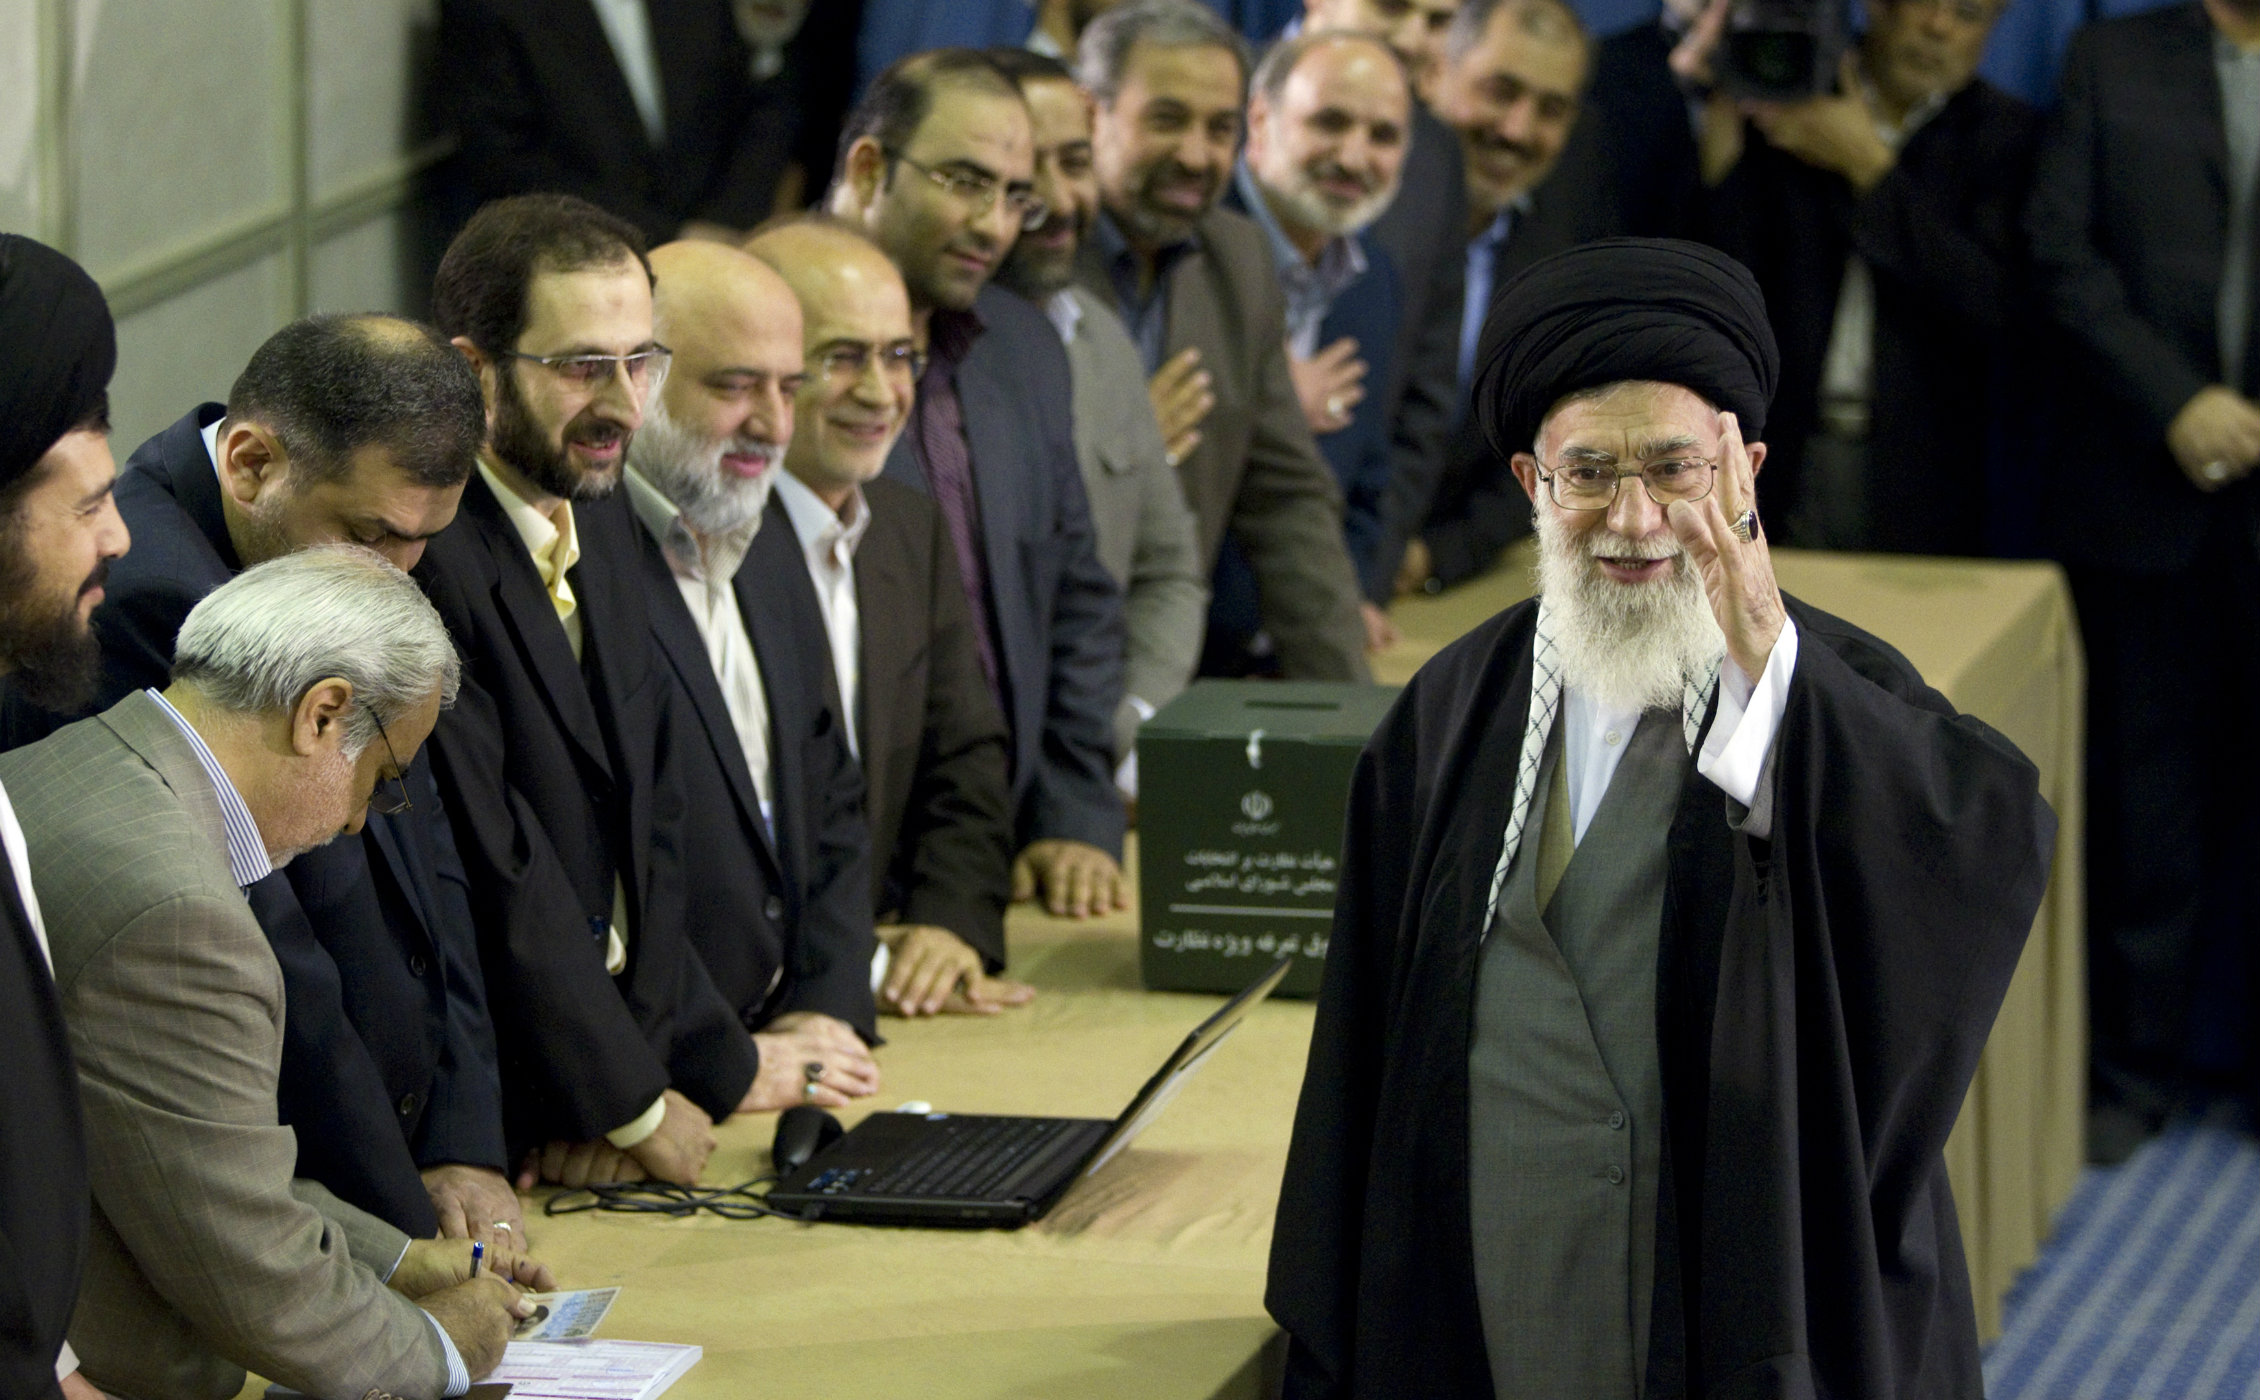 ran's Supreme Leader Ayatollah Ali Khamenei waves to the media after presenting his identification papers to cast his ballot in the parliamentary election in Tehran March 2, 2012. Polls opened on Friday for a parliamentary election in Iran that will test the popularity of the clerical establishment at a time of a standoff with the West over the country's nuclear programme. REUTERS/Caren Firouz